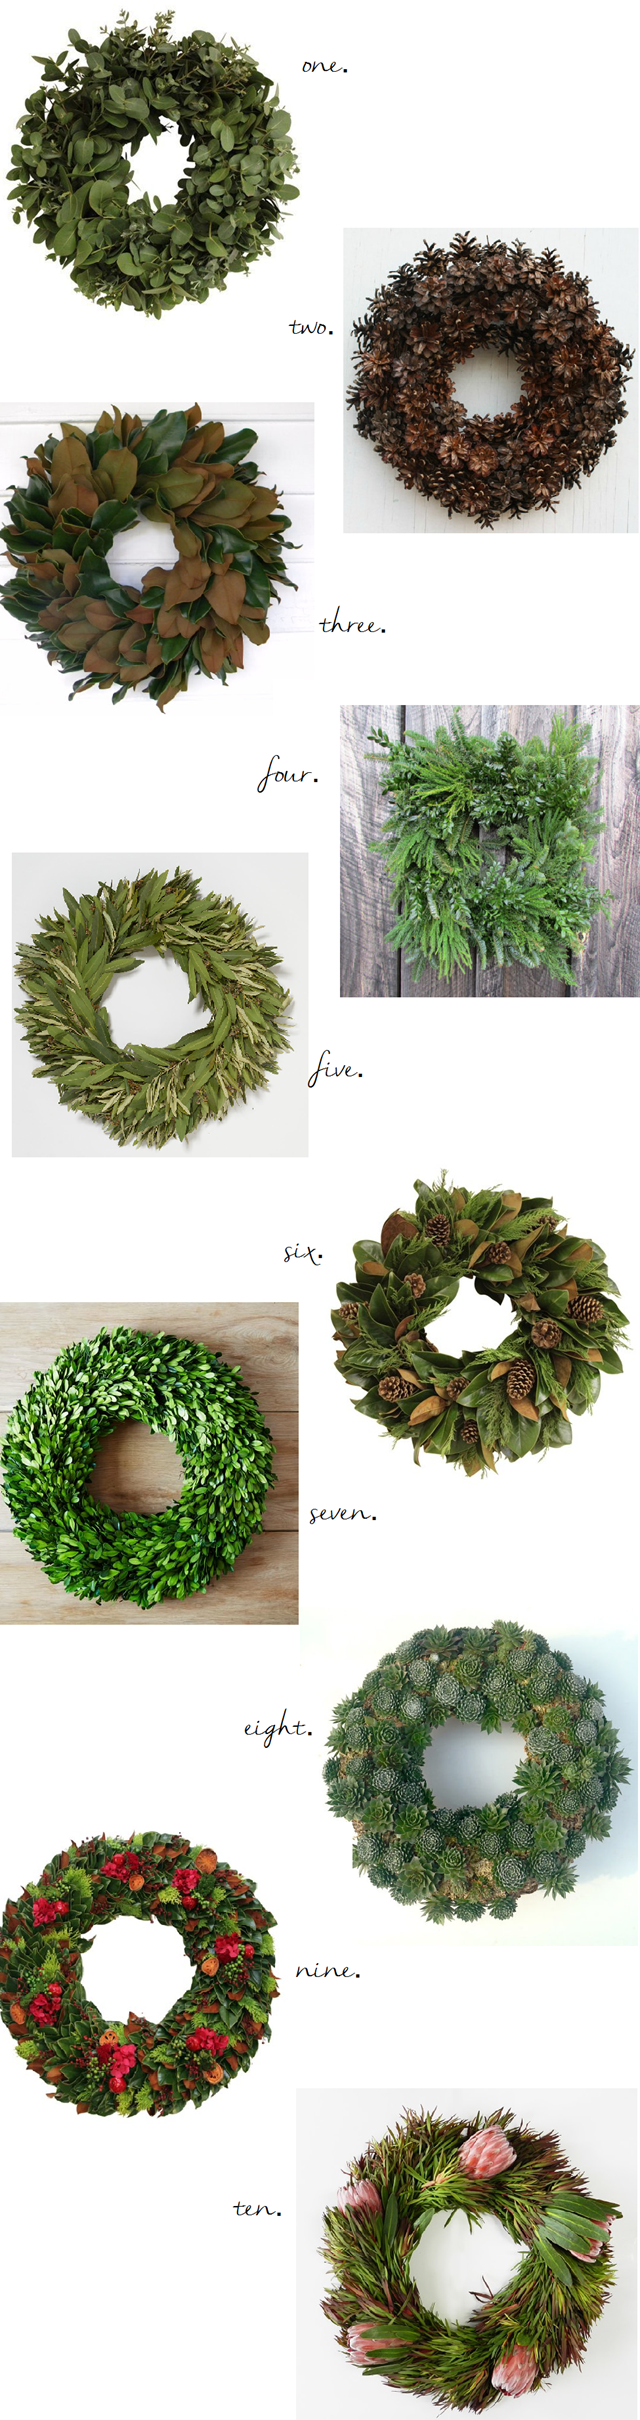 christmas-wreaths